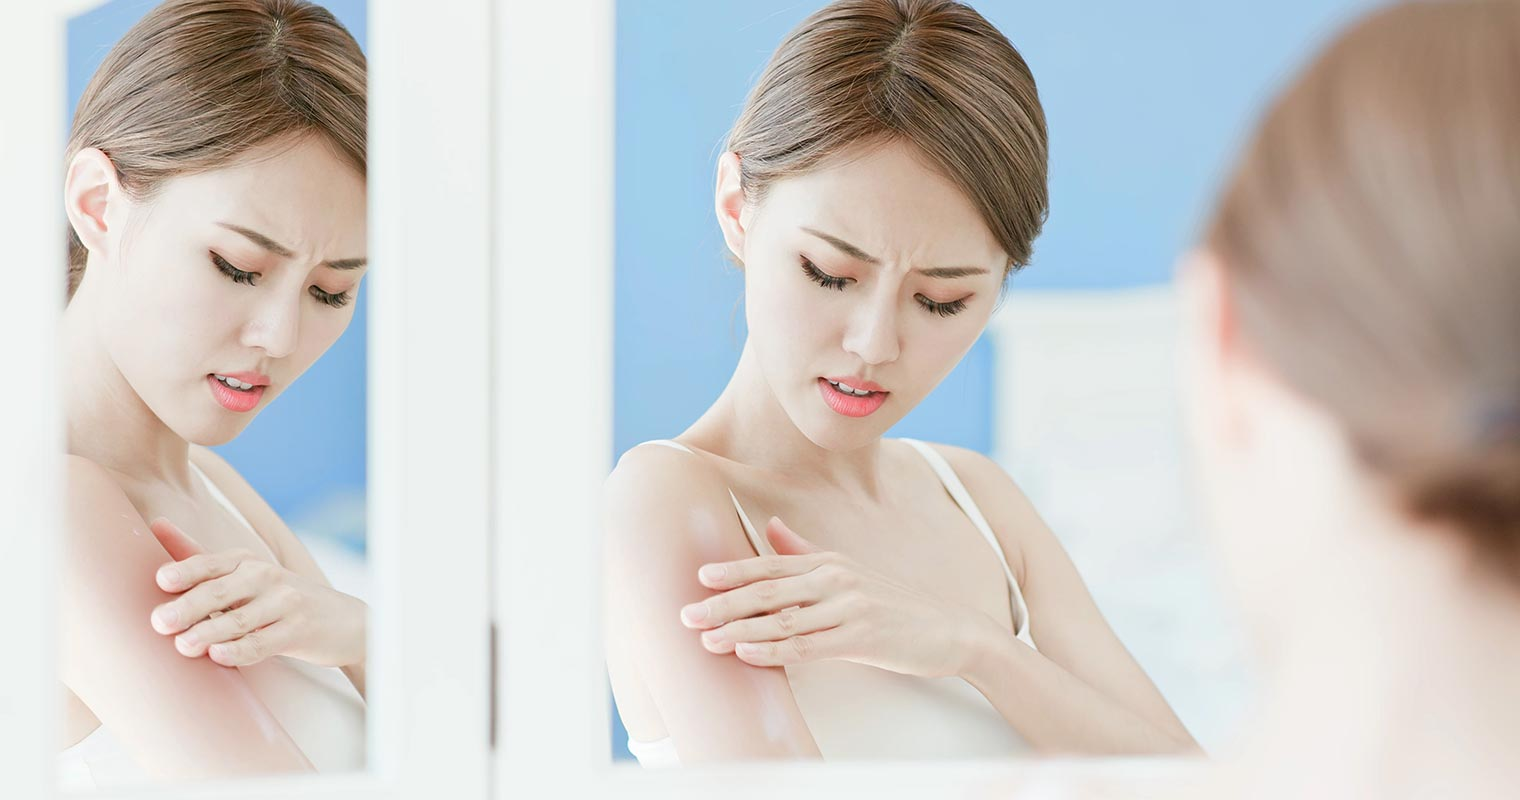 Can probiotics help to heal skin conditions such as eczema, psoriasis and rosacea?